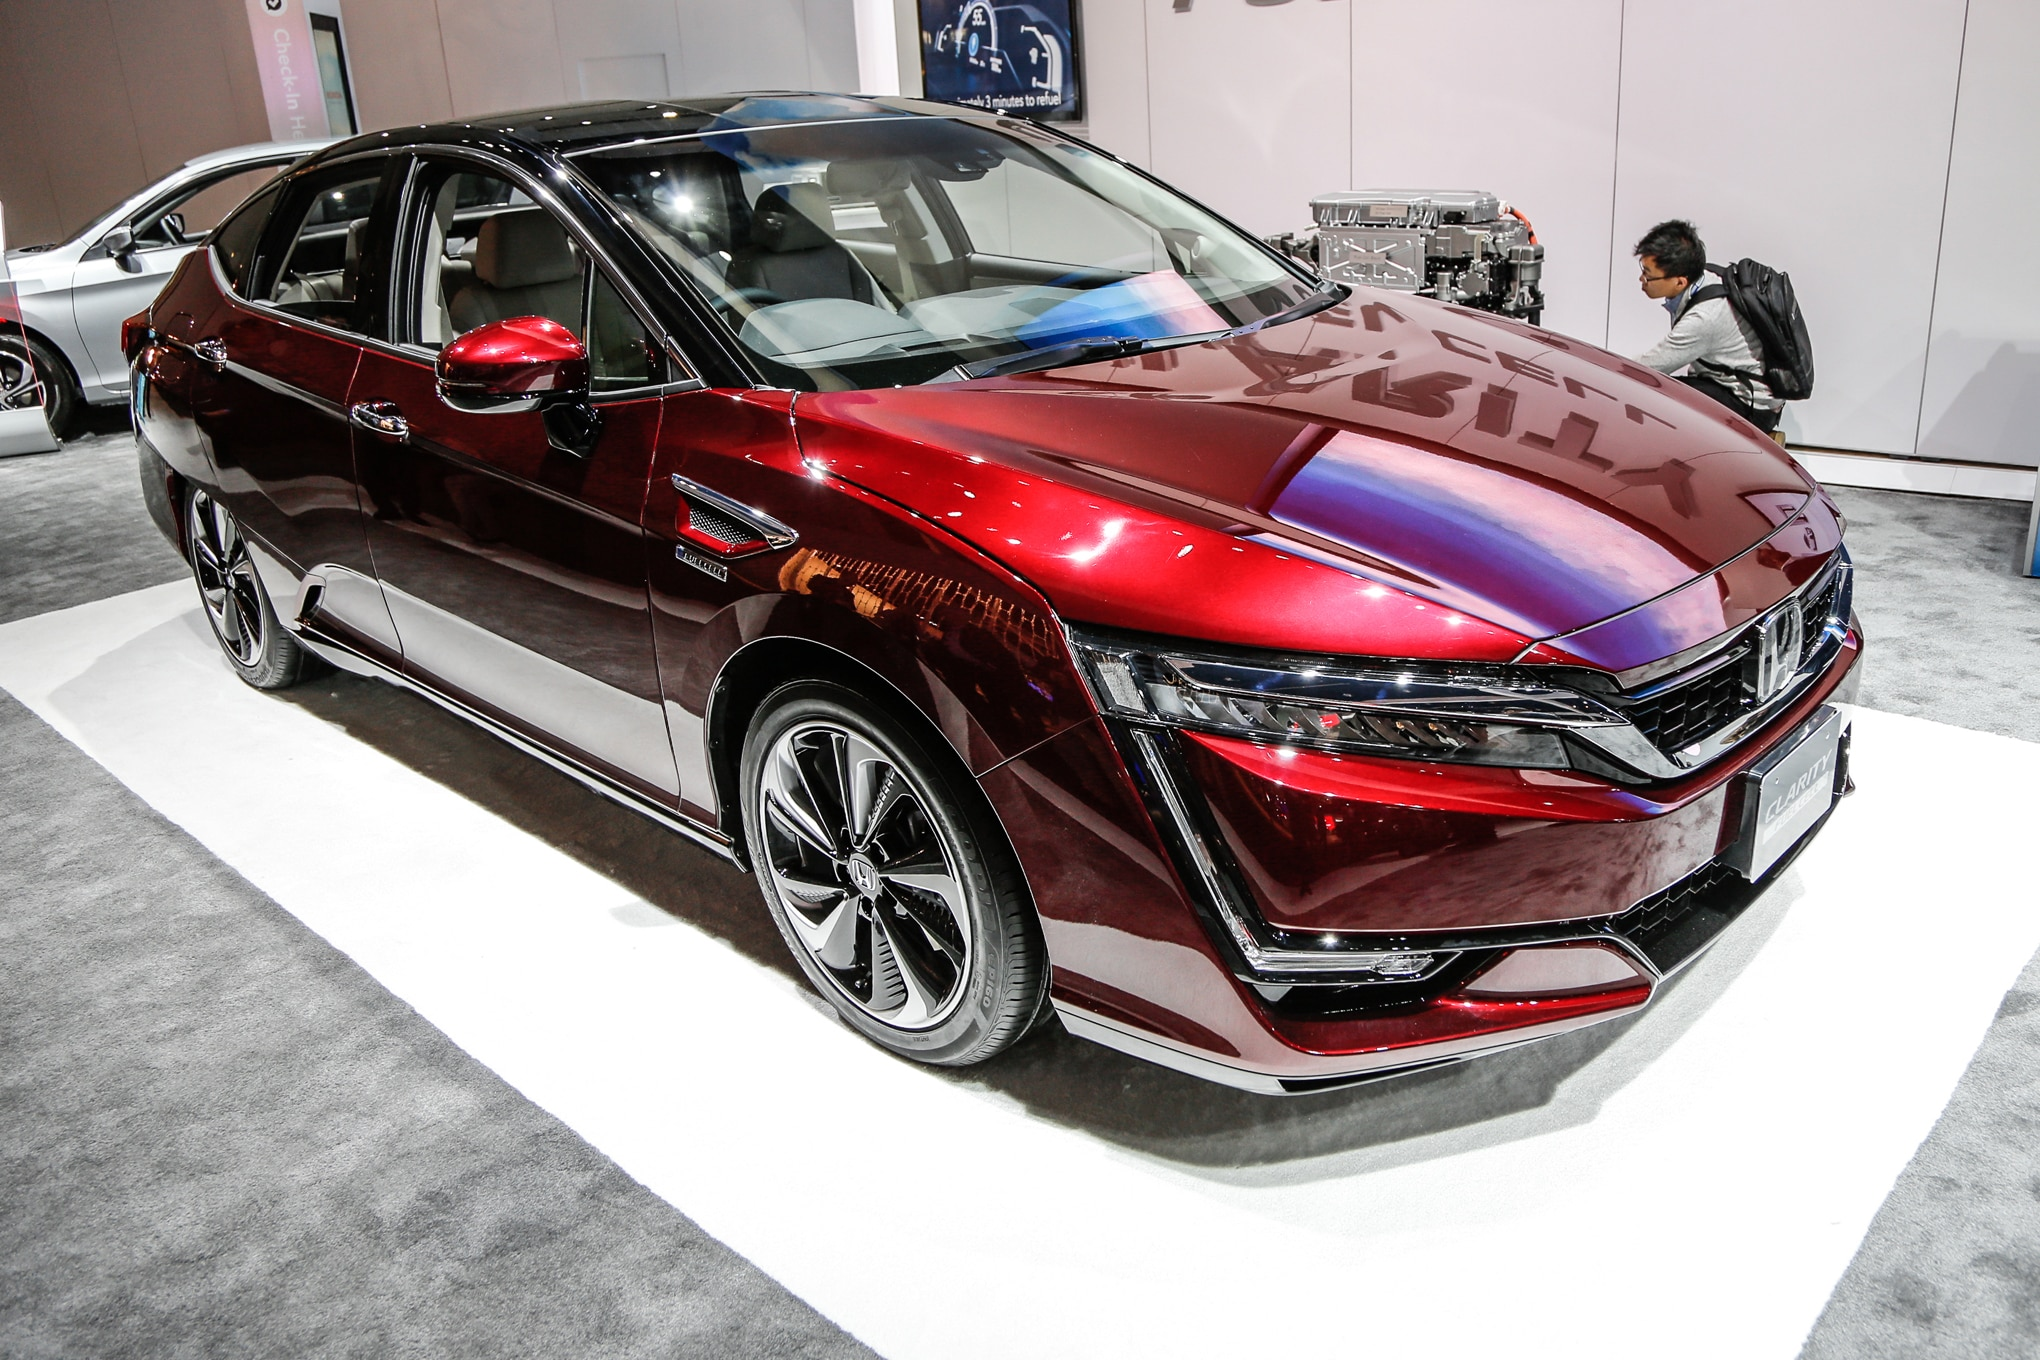 Honda Clarity Fuel Cell Lease Price Will Be Under $500 a Month